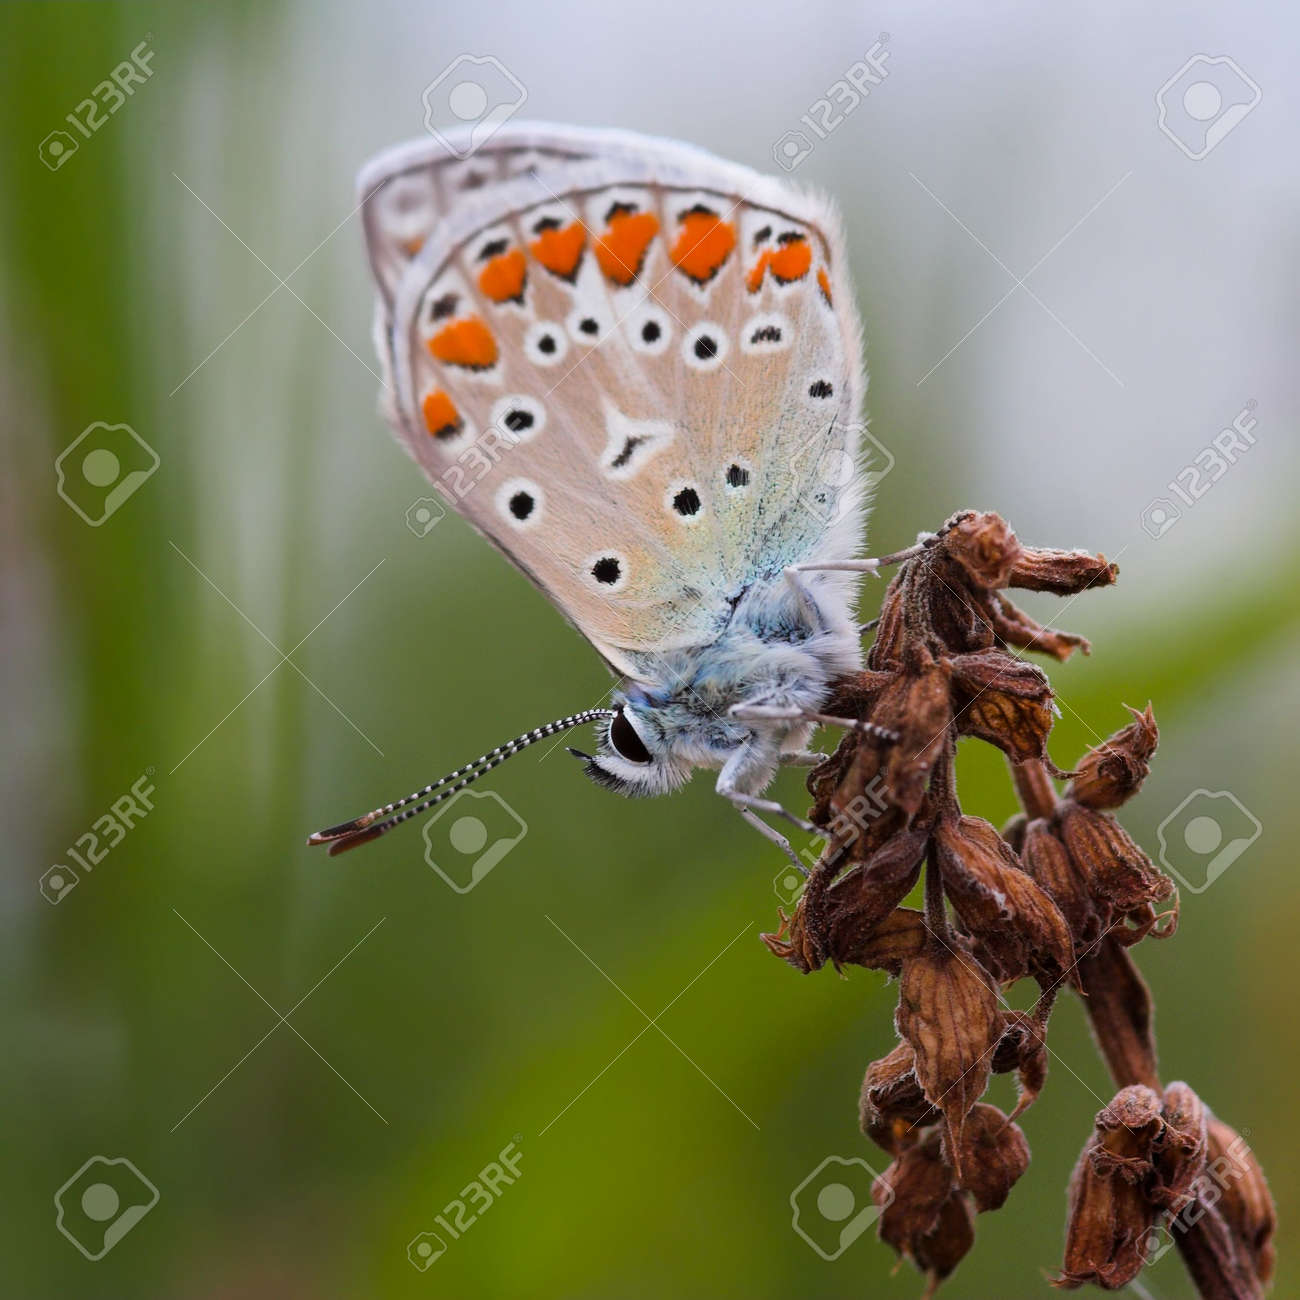 Closeup of a butterfly sitting on a flower. Stock Photo - 890382